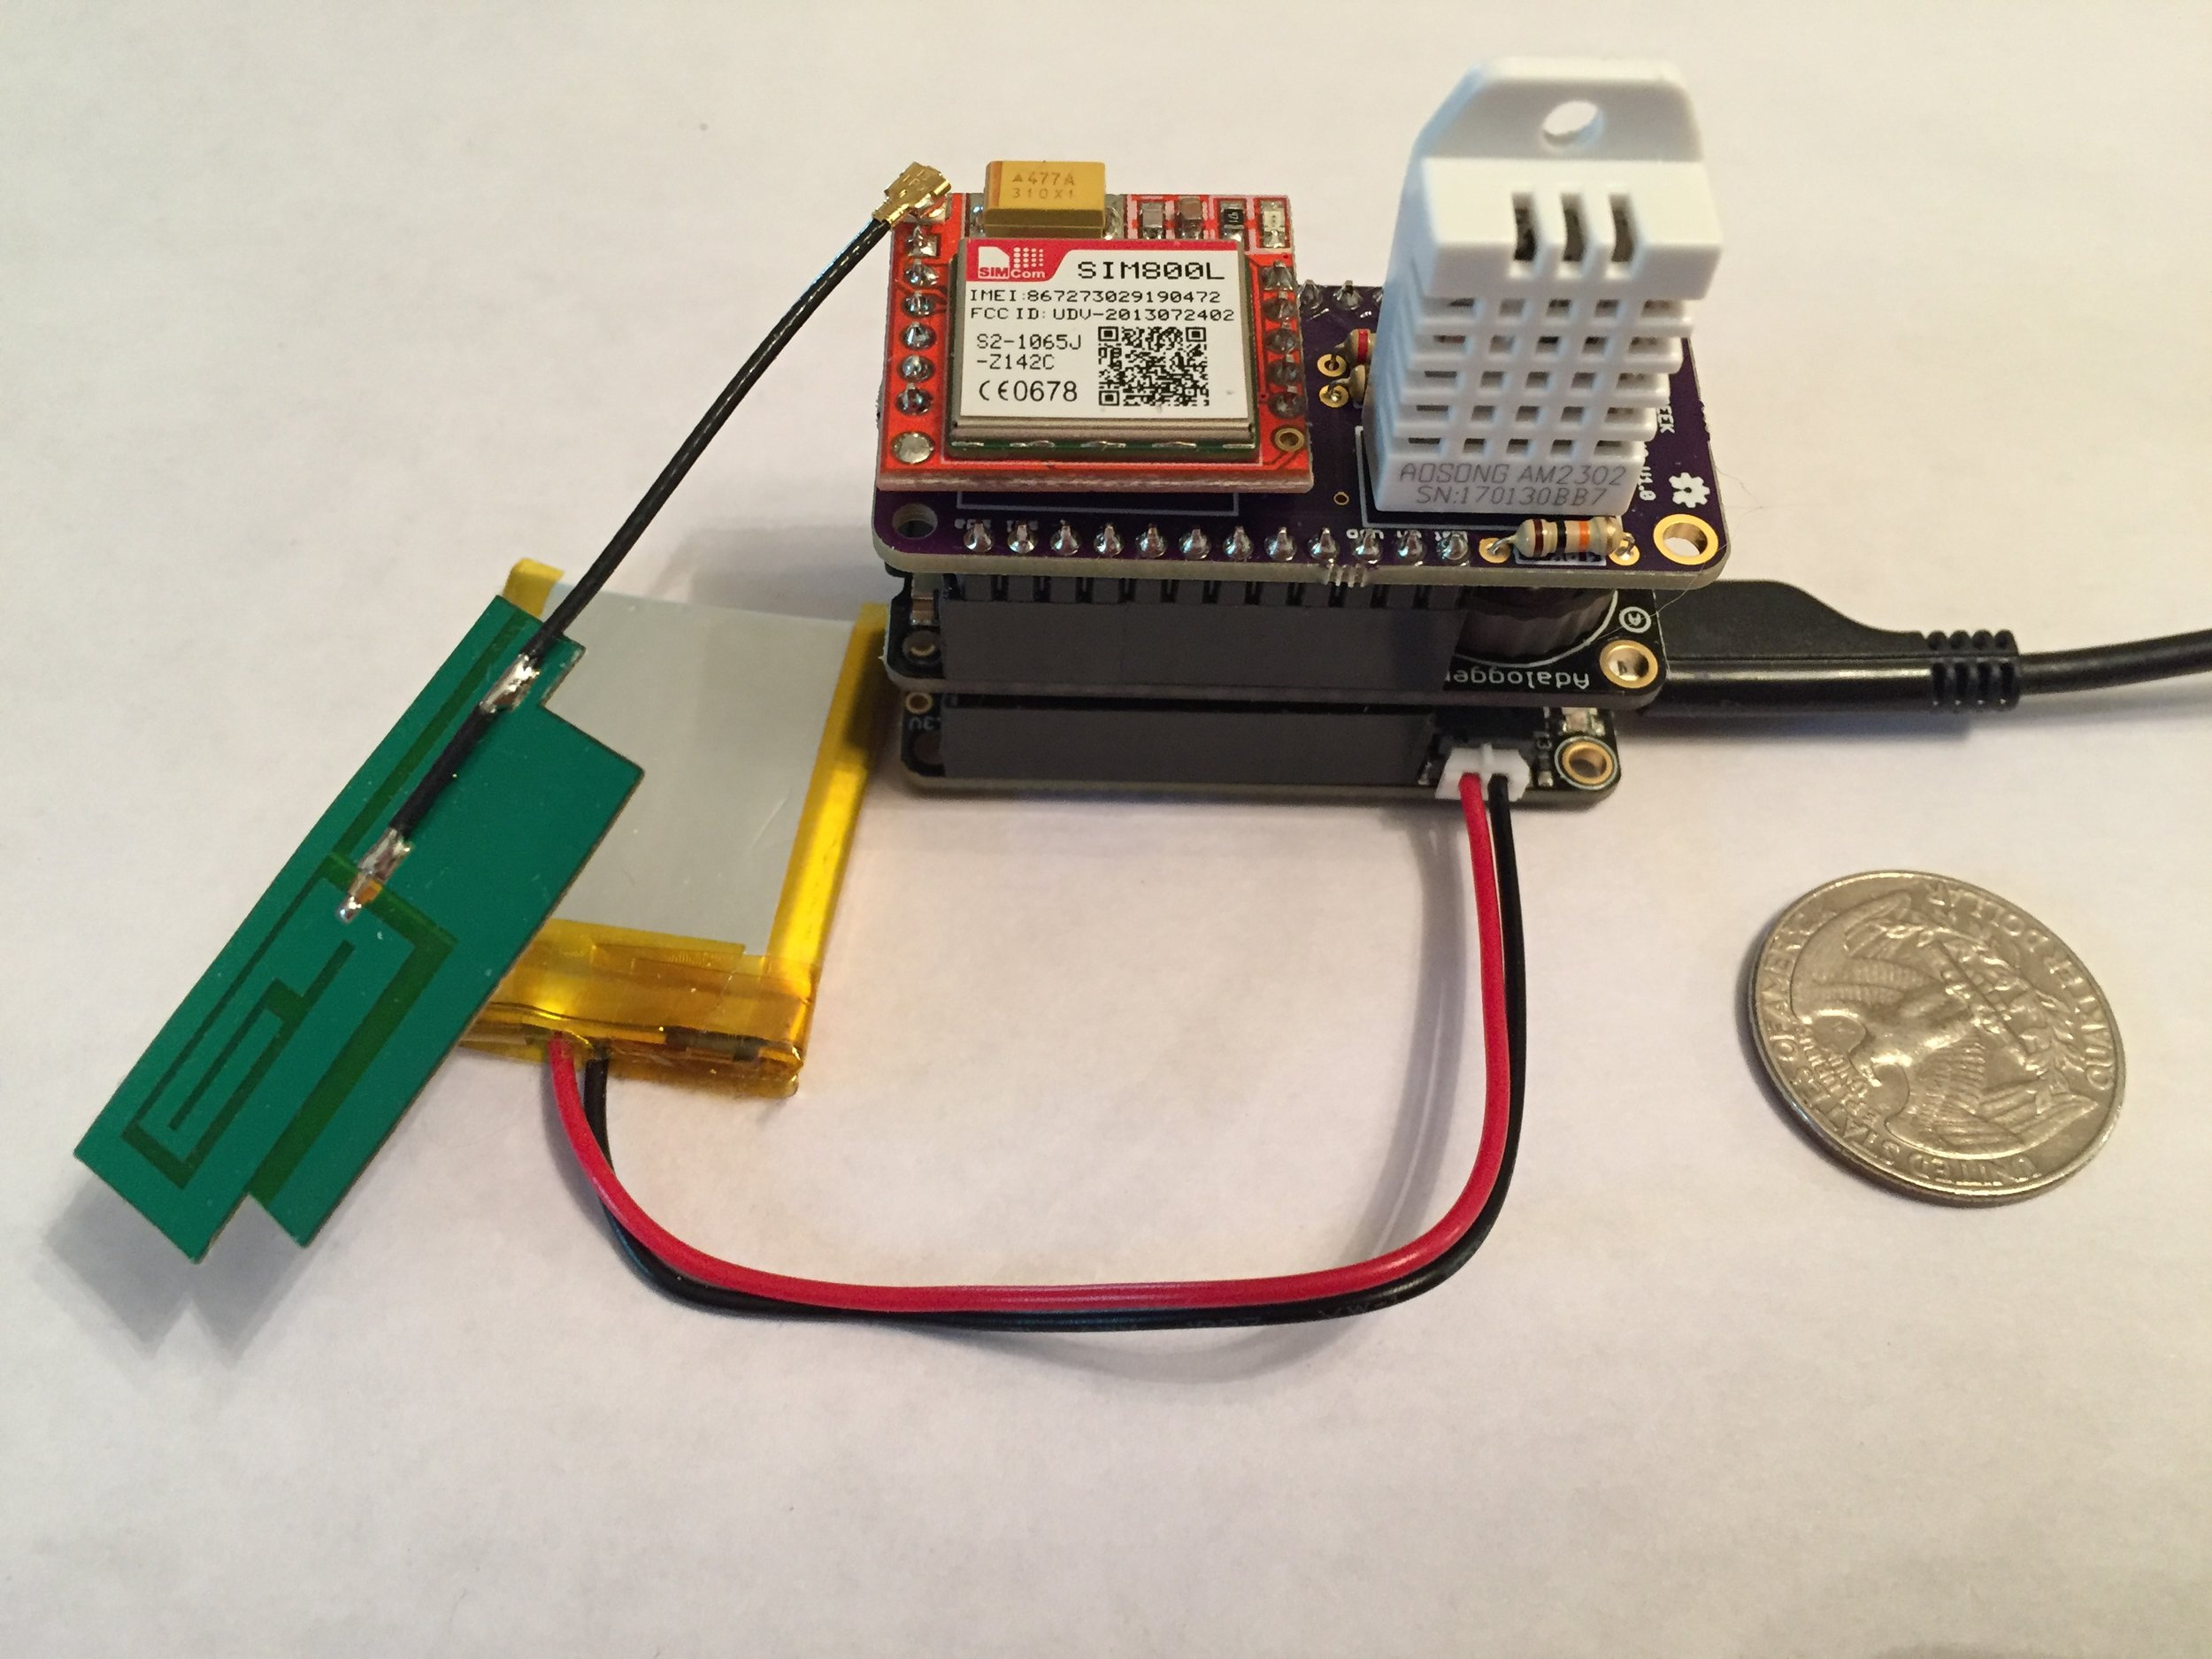 """Working prototype of the new sensor design.""""The new sensors place an emphasis on  simplicity and reliability , so things like a failed radio transmission or network connection will never get in the way of writing an accurate temperature log to the SD card."""" -Ryan Boland, chief product designer of our new sensor"""